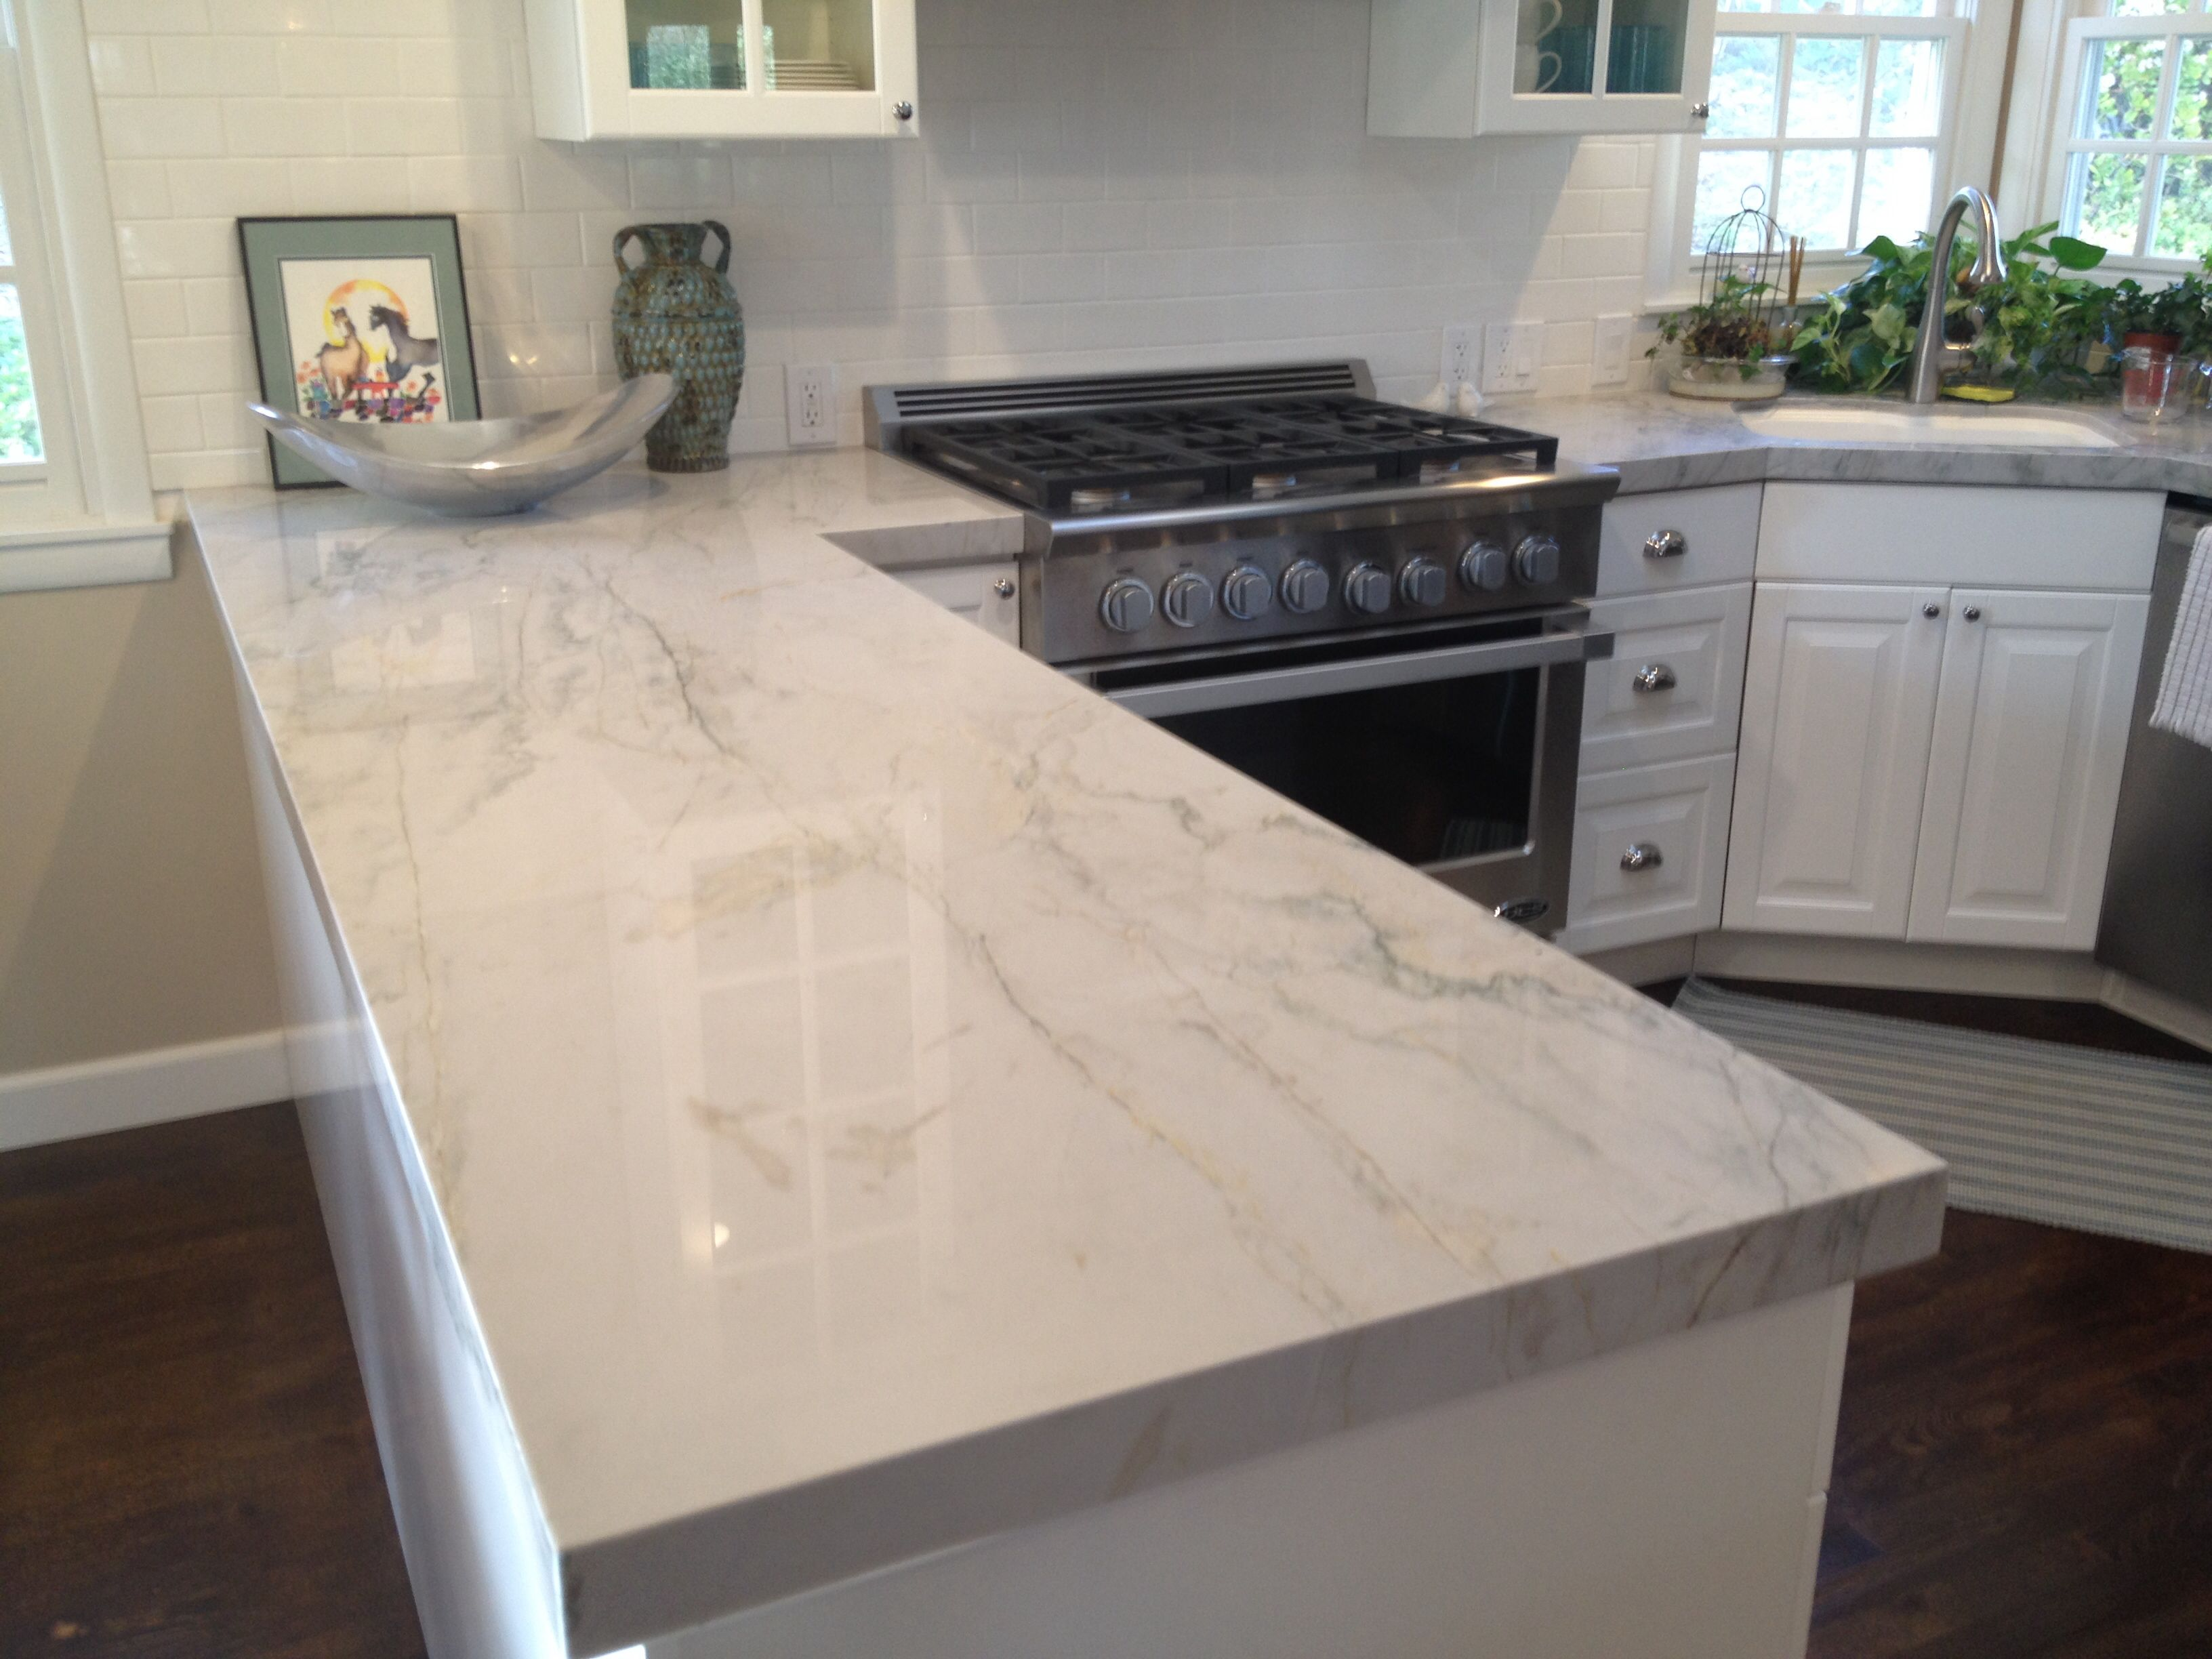 Quartzite countertops decorating ideas pinterest Backsplash ideas quartz countertops